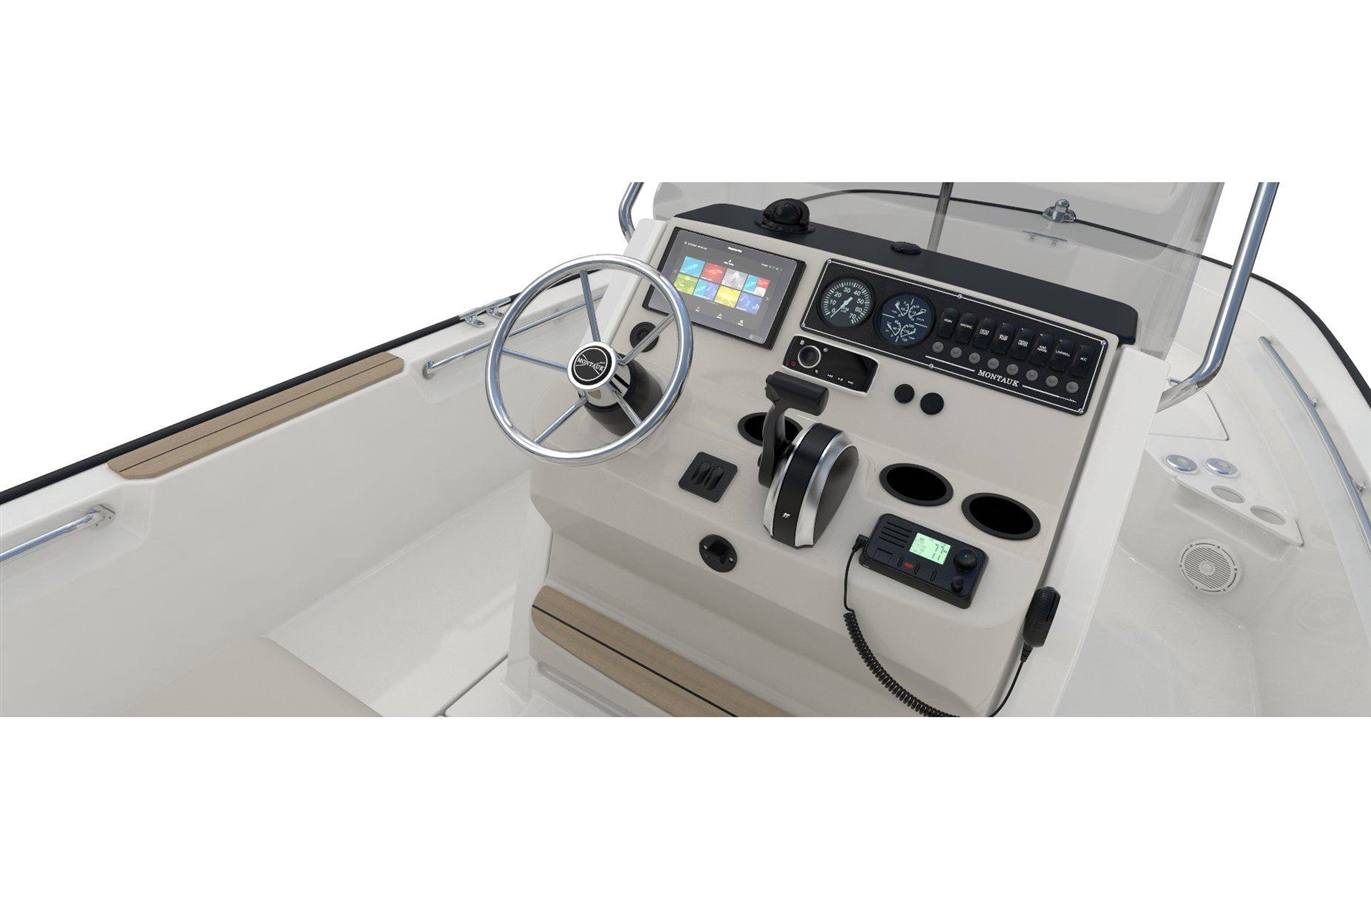 2018 Boston Whaler 210 Montauk For Sale In Sister Bay Wi Mercury Verado Dts Wiring Diagram Previous